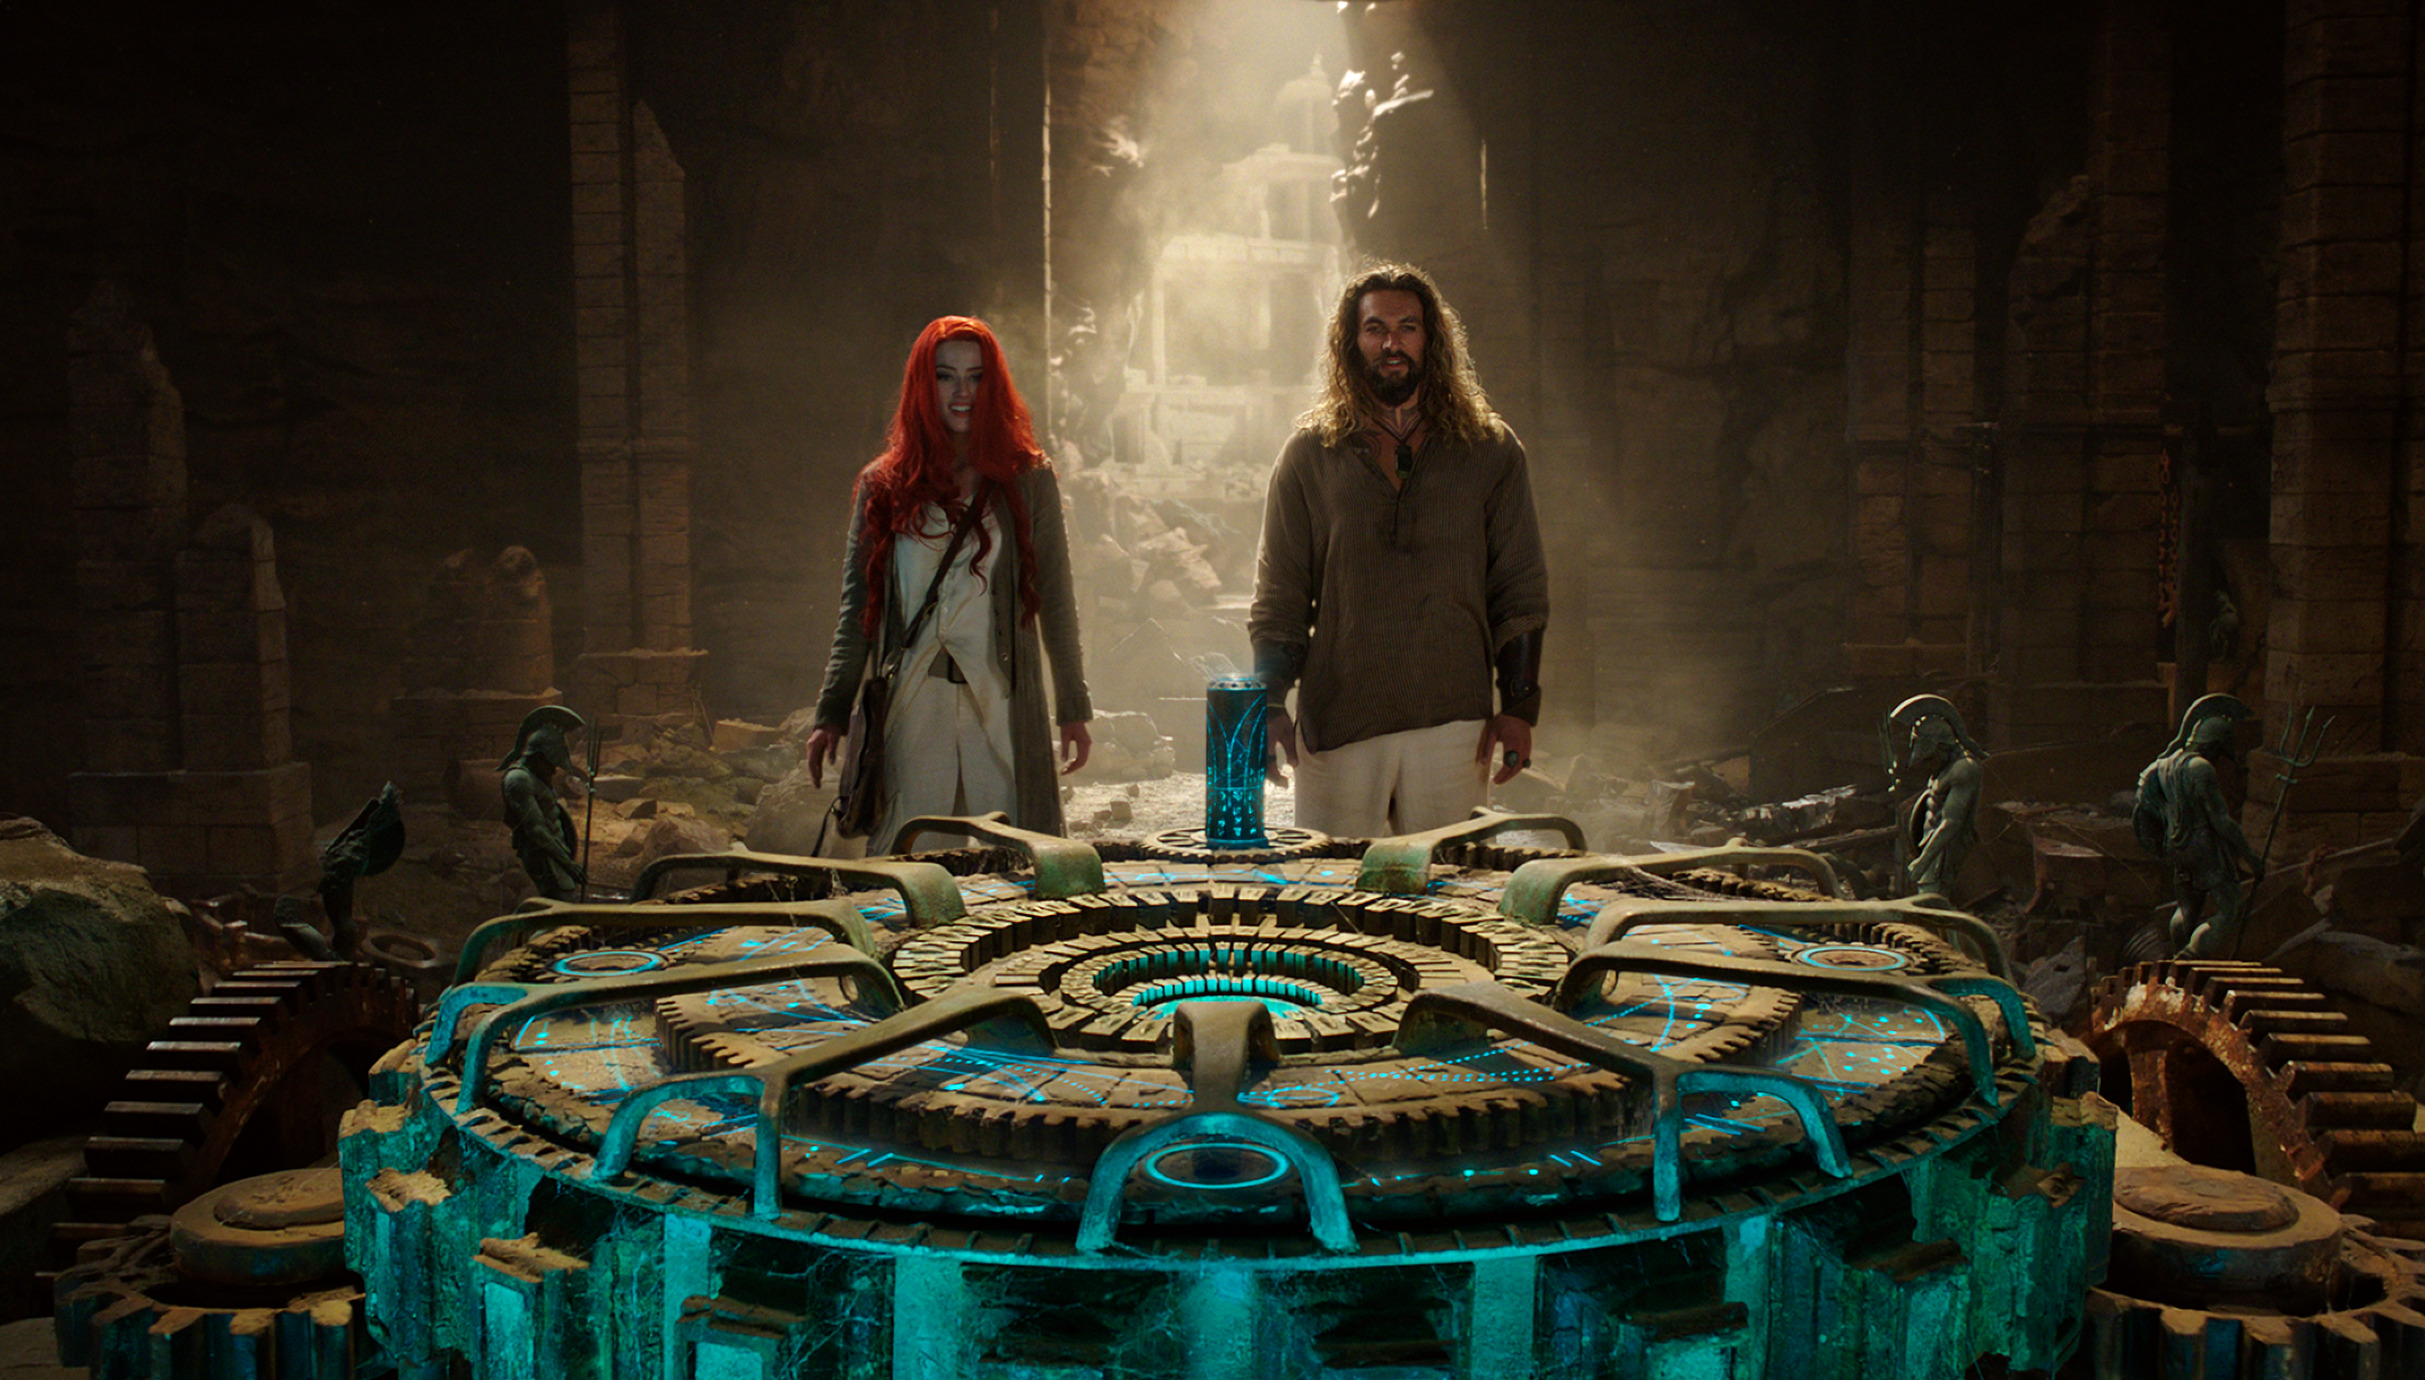 AQUAMAN 2 Set for 2022, Going Head-to-Head with DISNEY